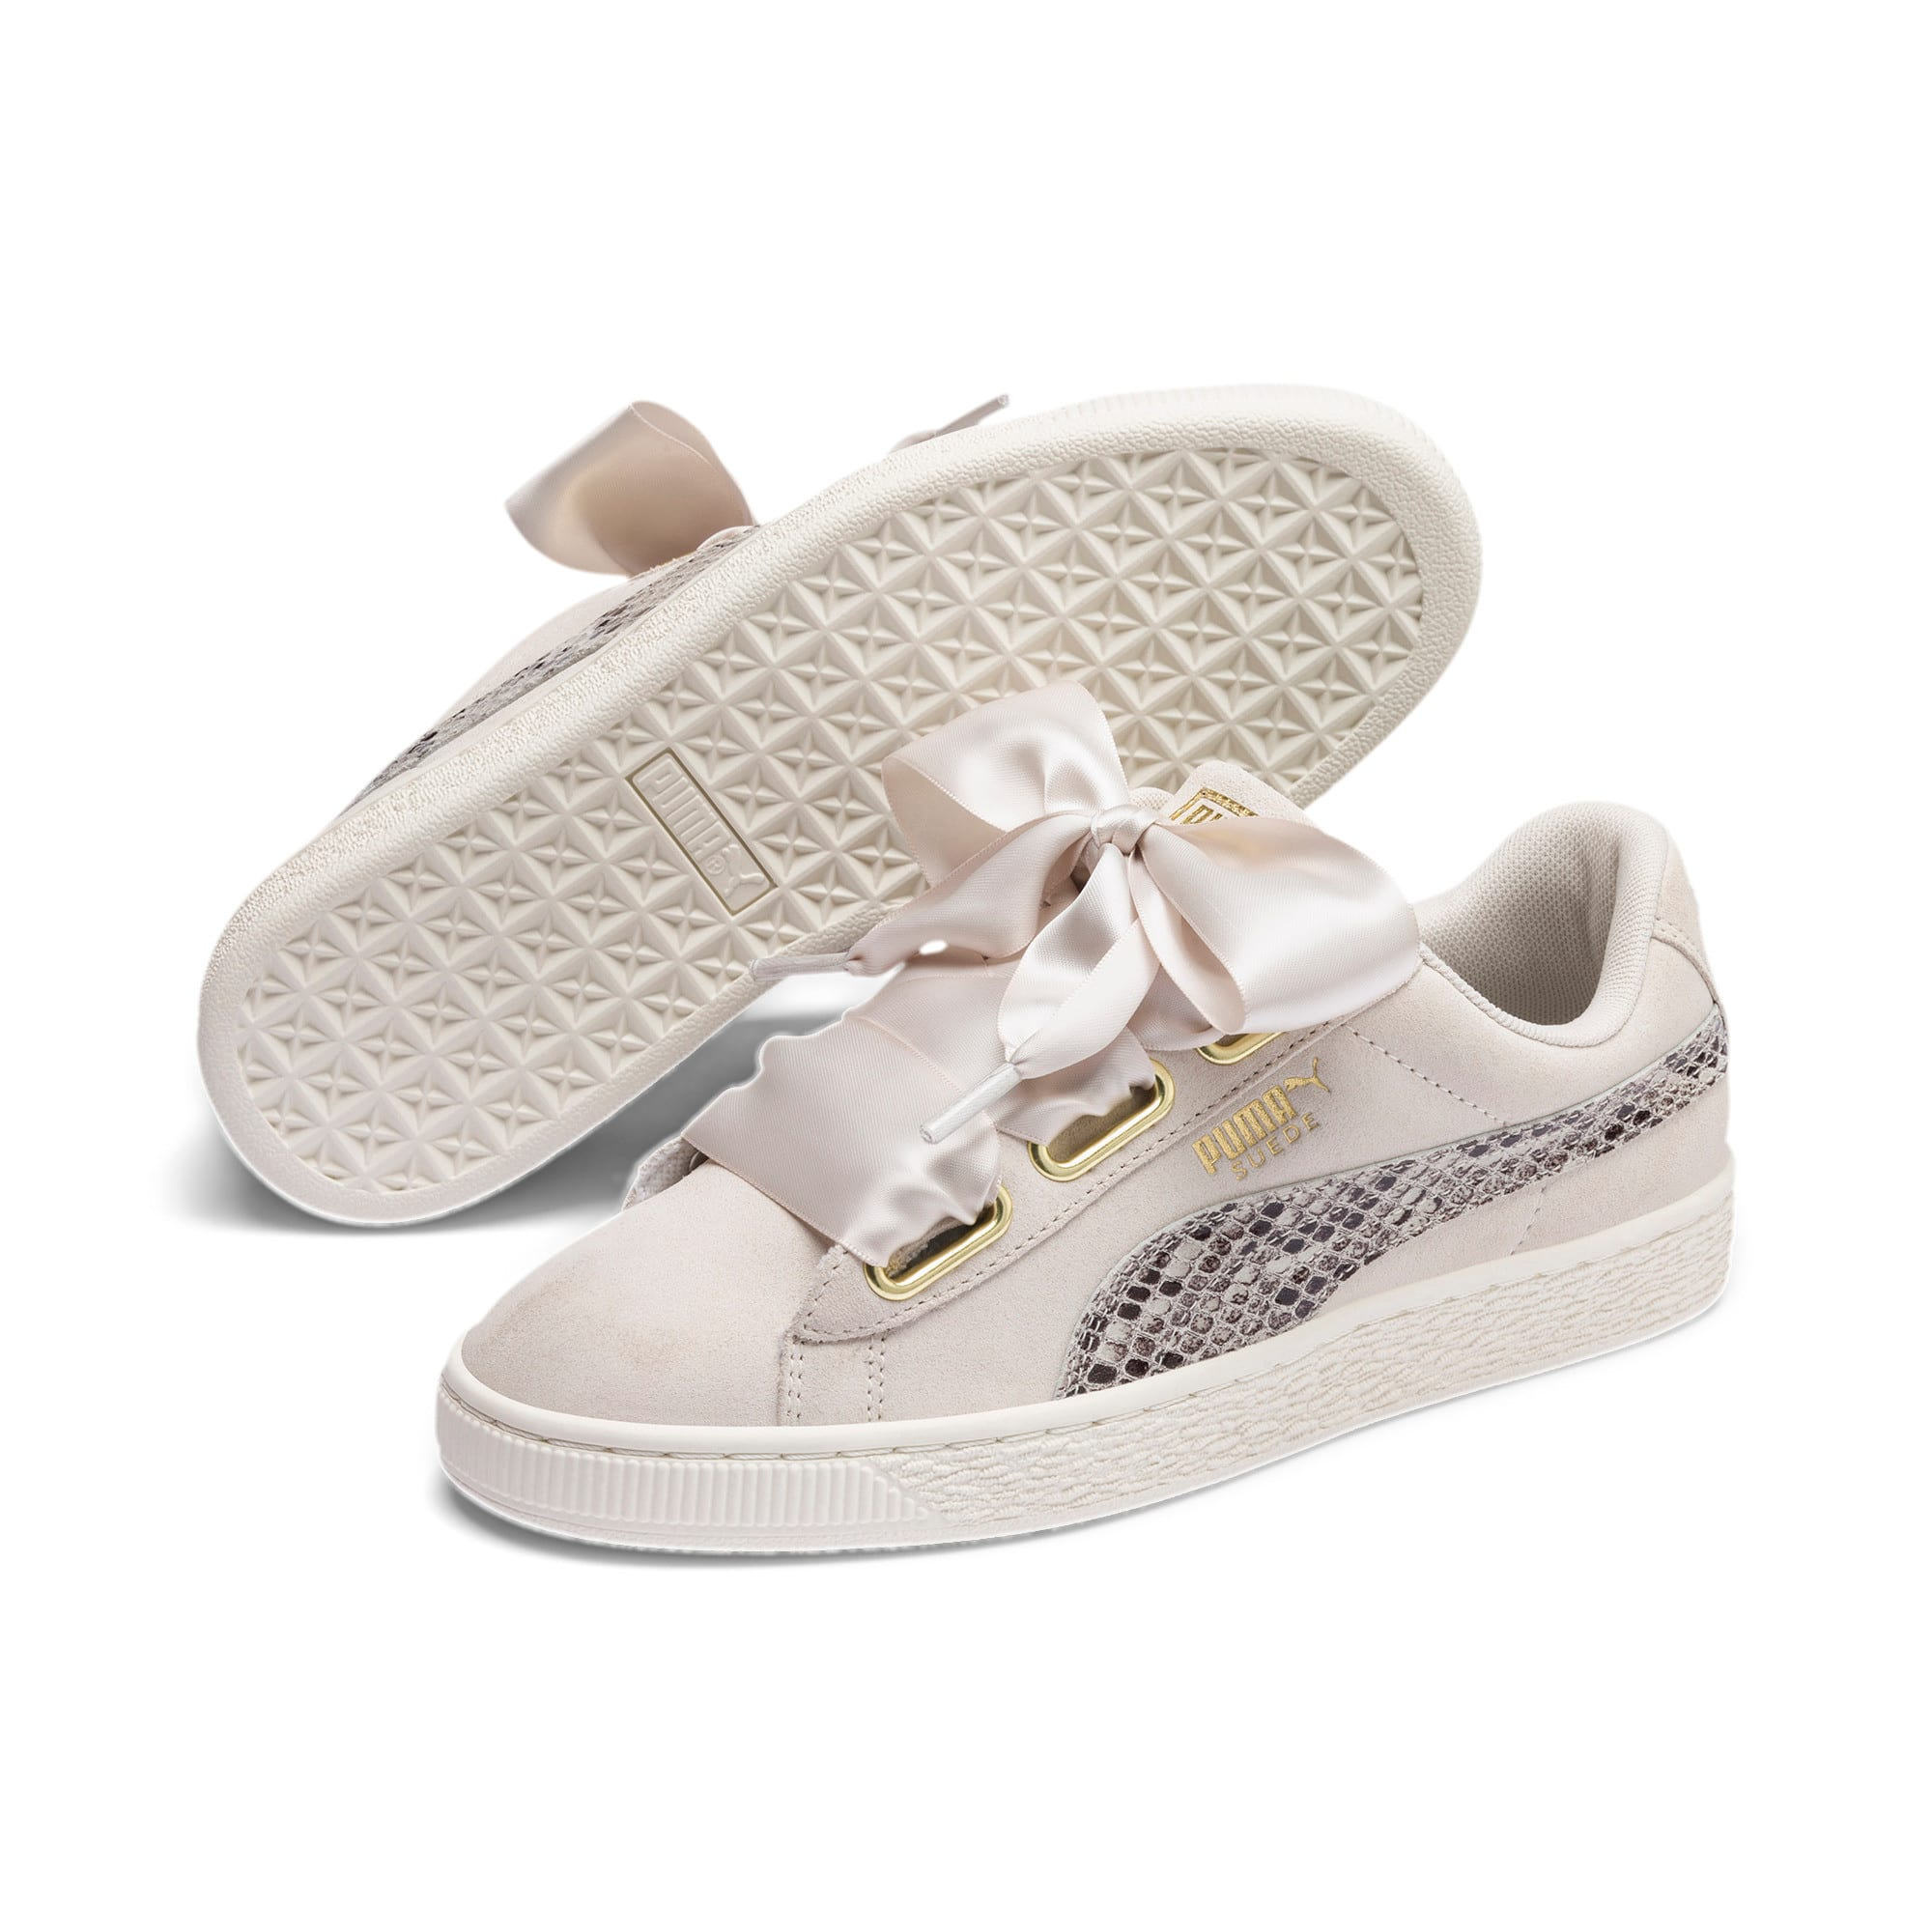 Thumbnail 3 of Suede Heart Snake Lux Women's Sneakers, Pastel Parchment-PTeam Gold, medium